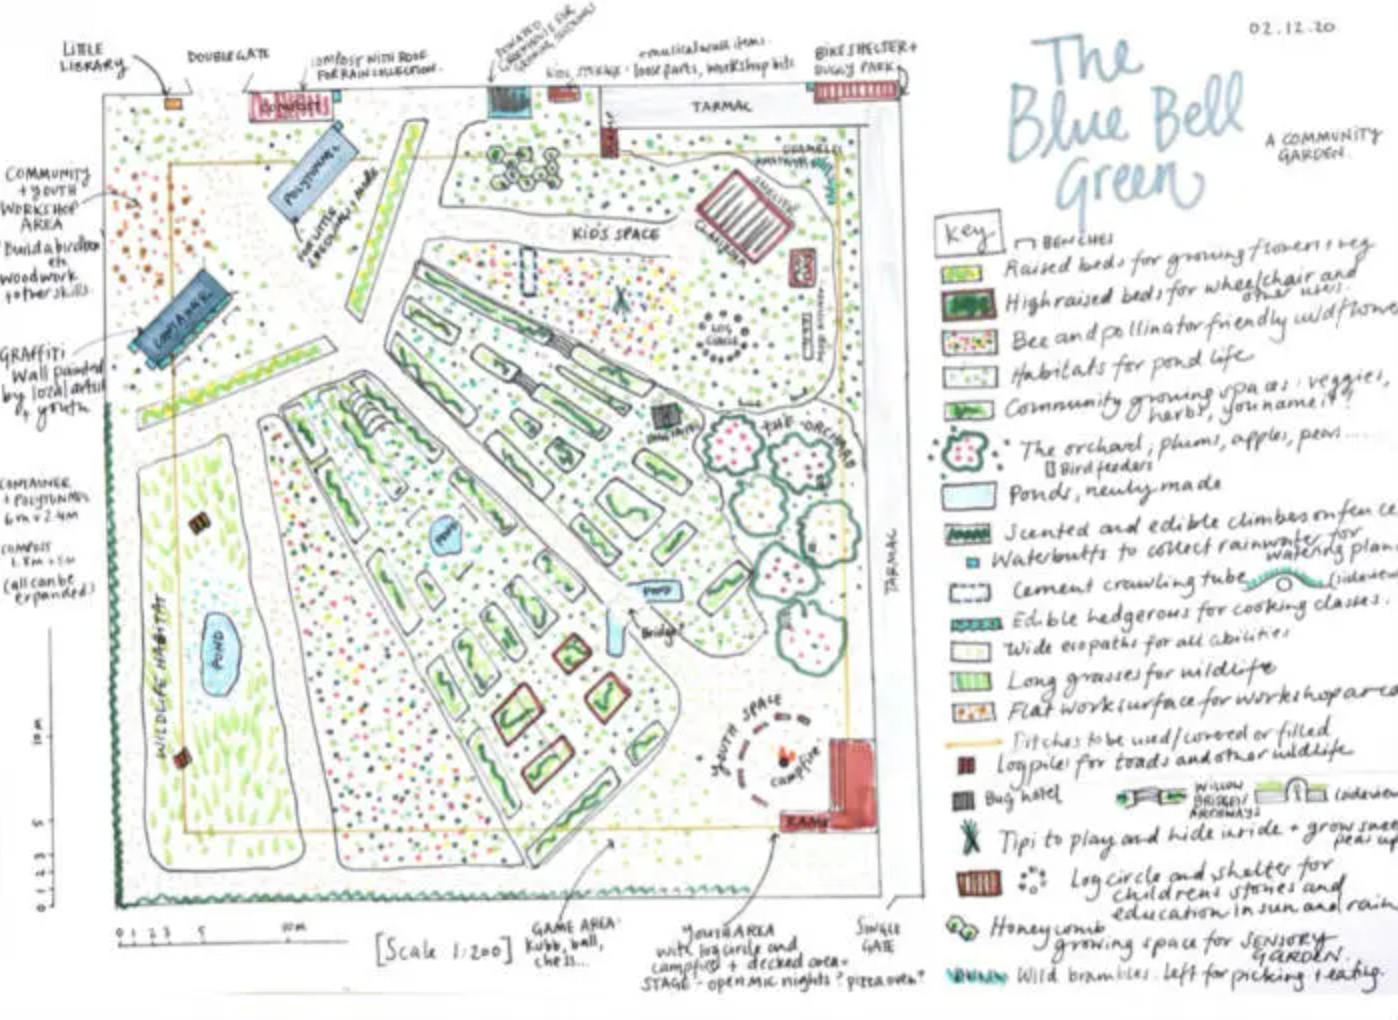 You can help this Levenshulme group win £5,000 to transform a former bowling green into a community garden, The Manc